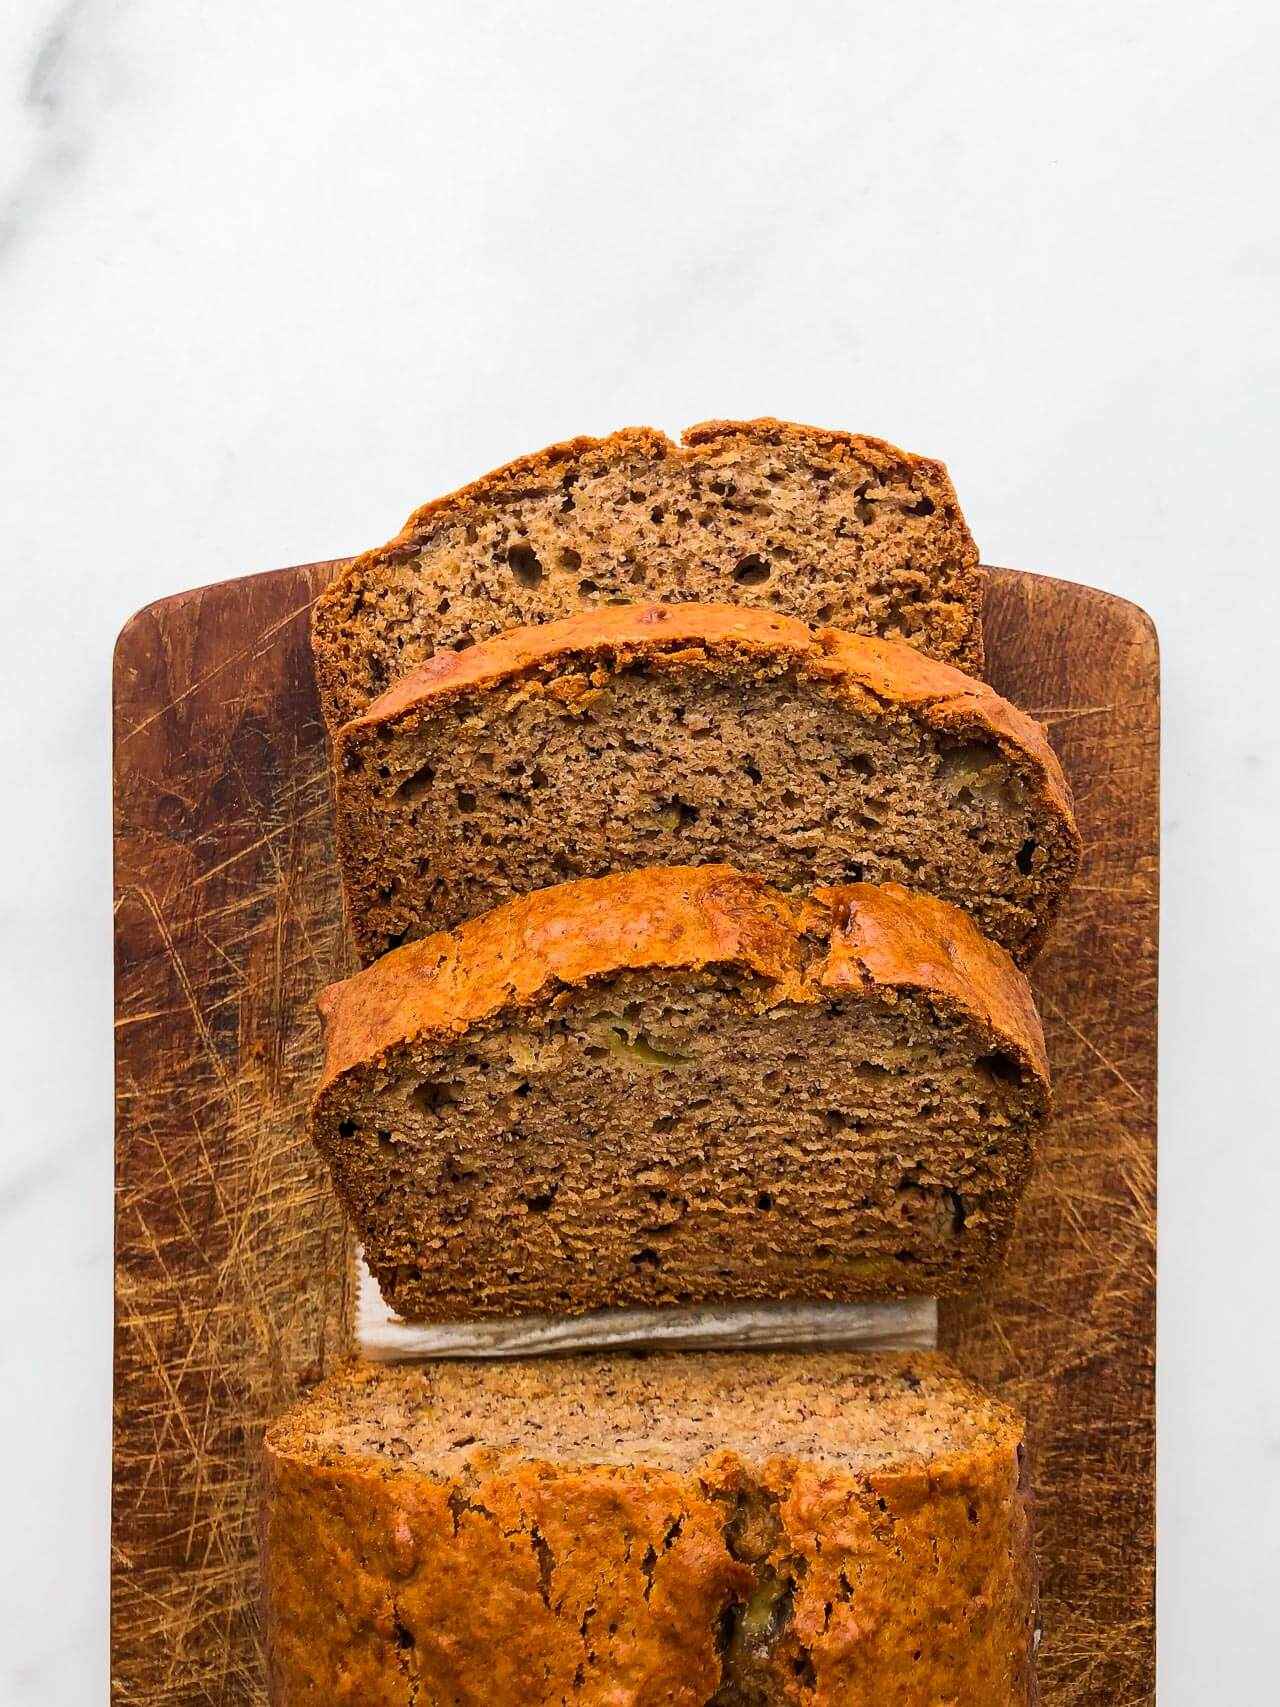 Sliced vegan banana bread (eggless)